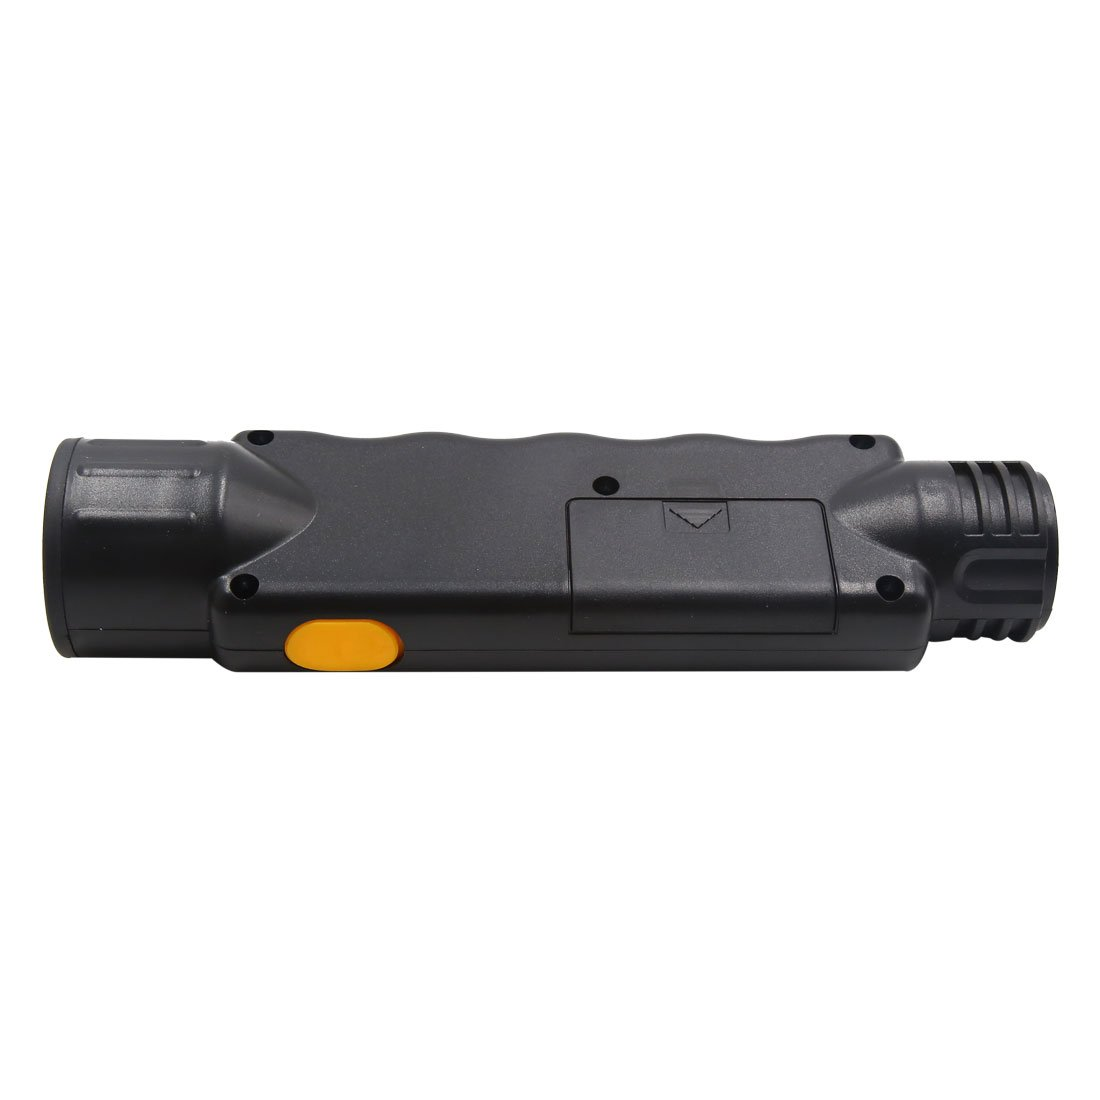 uxcell 13 Pin Euro Socket Car Trailer Towing Bar Siganl Light Adapter Connector Tester by uxcell (Image #2)